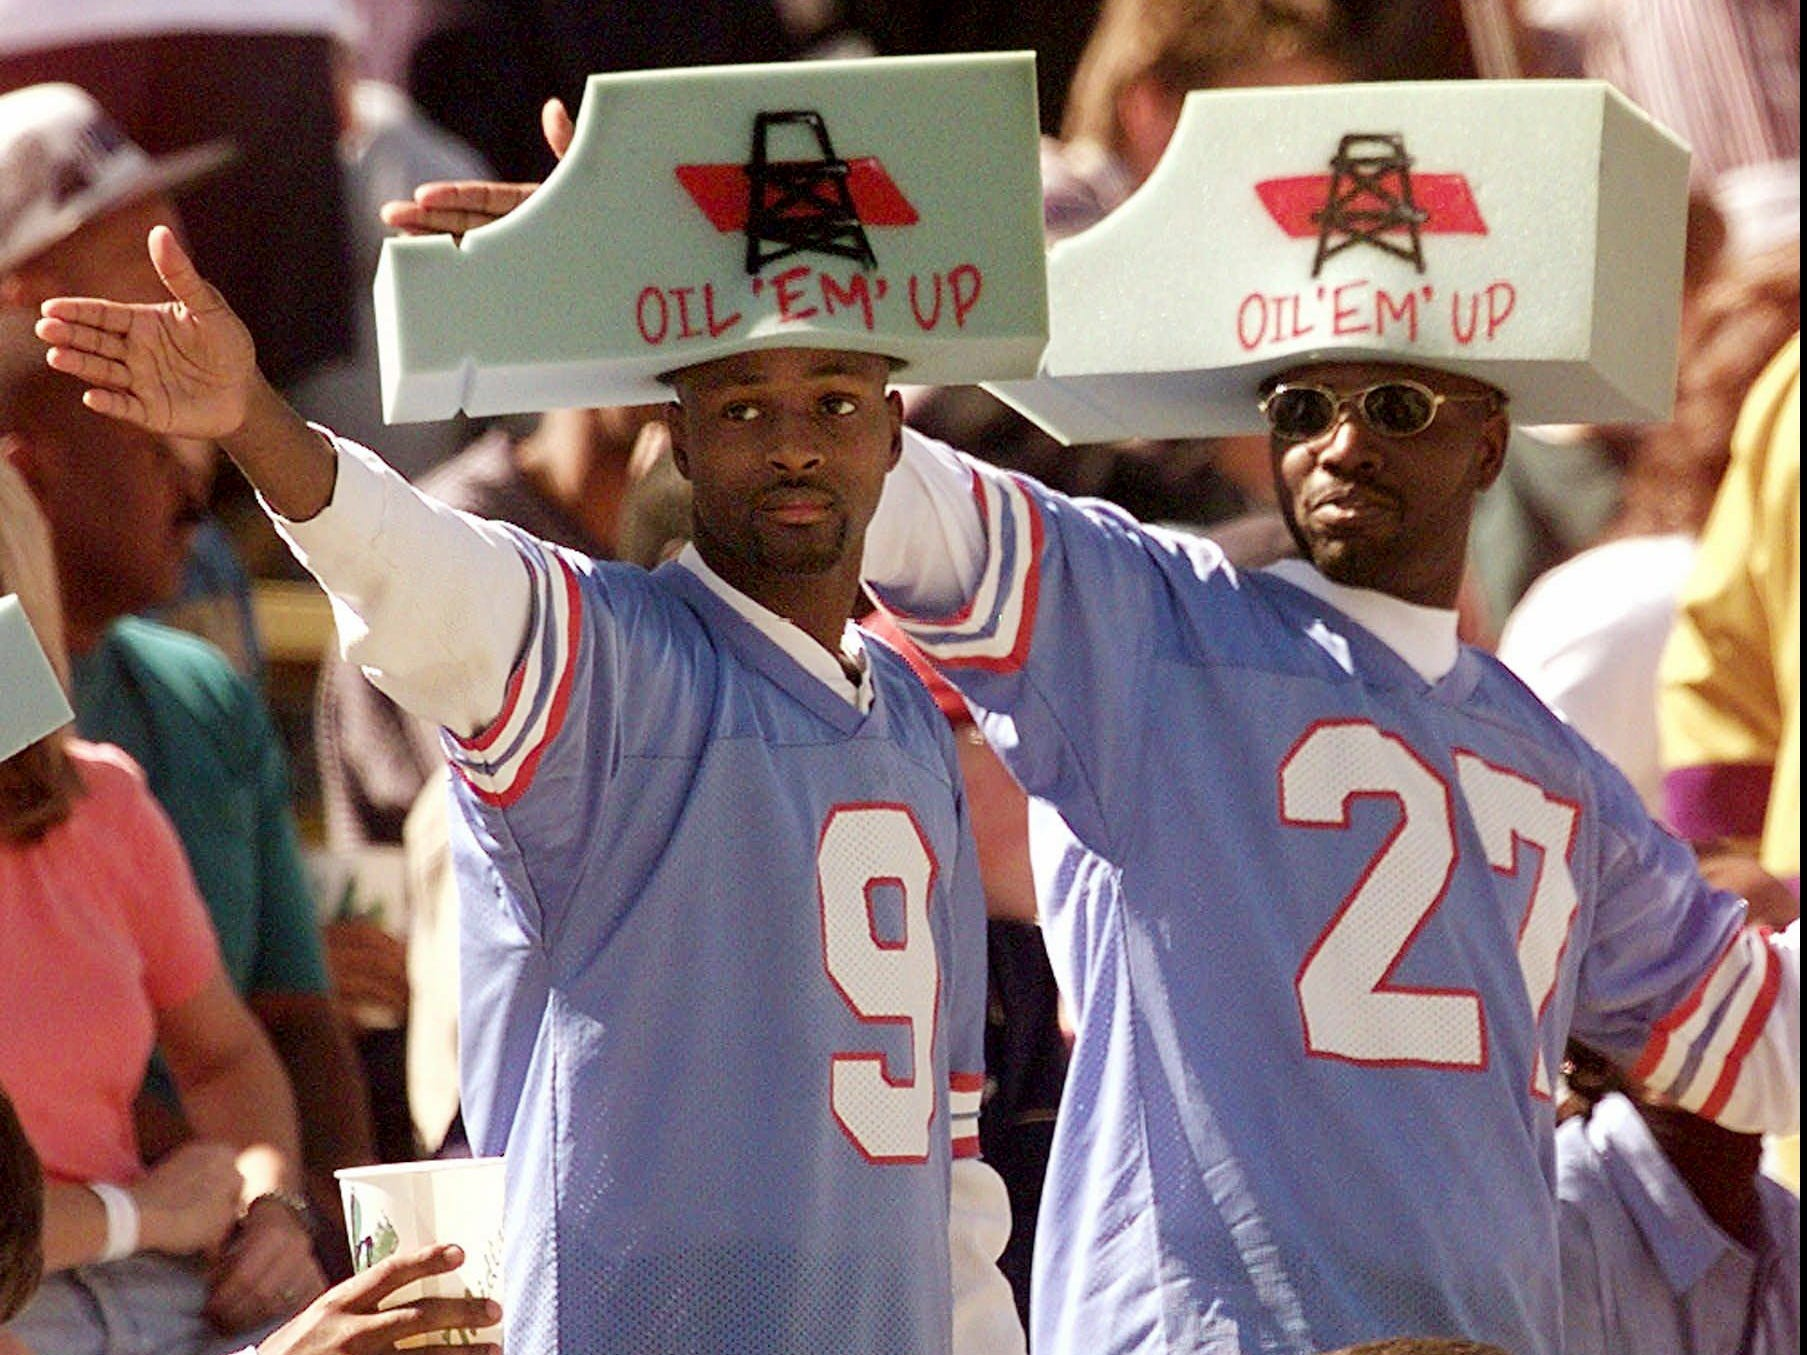 Two Tennessee Oilers fans signal an Oilers' first down during their 28-14 win over the Washington Redskins in Memphis Oct. 19, 1997. The Oilers drew 31,042 fans for the game, the largest crowd they've had this season at a home game.